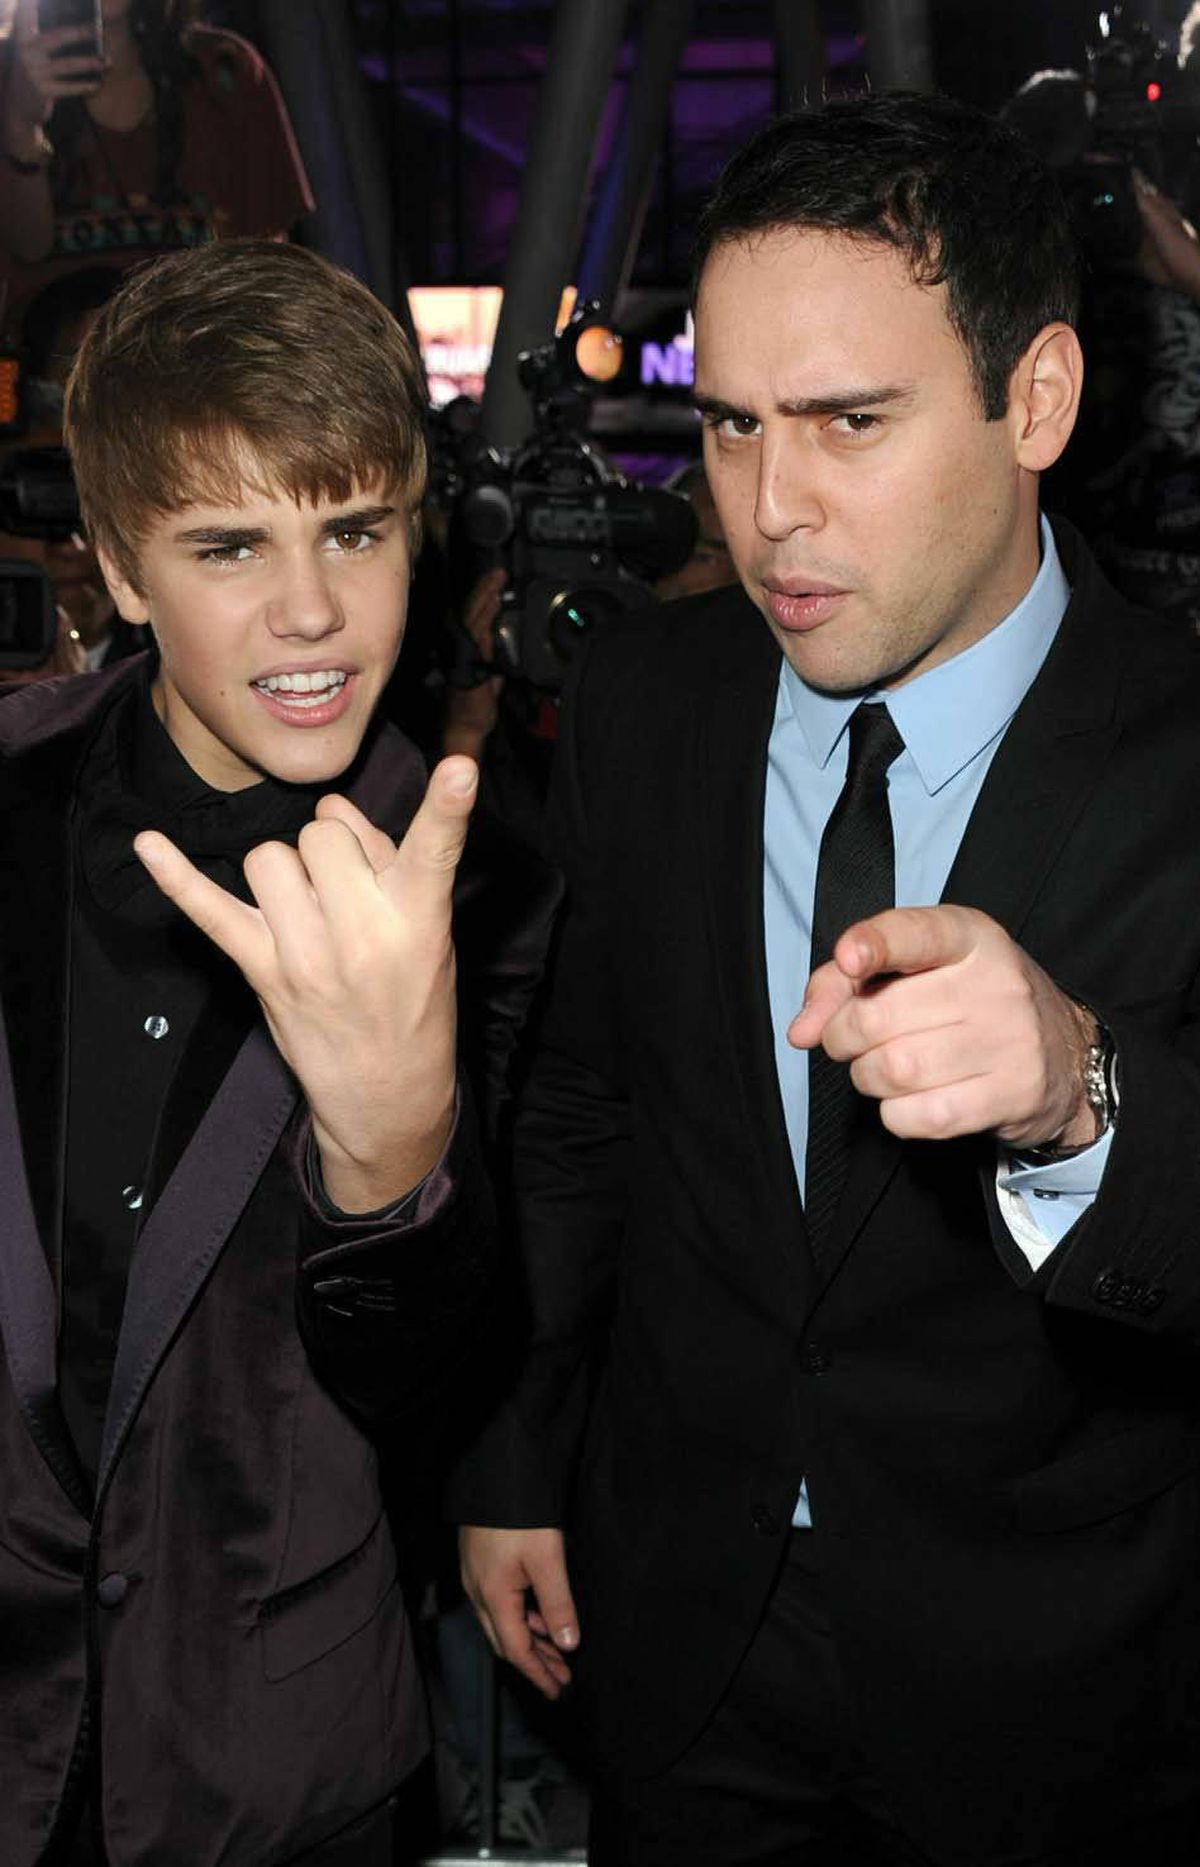 """Justin Bieber and his manager Scooter Braun keep the fans in line at the premiere of """"Justin Bieber: Never Say Never"""" in Los Angeles on Feb. 8."""